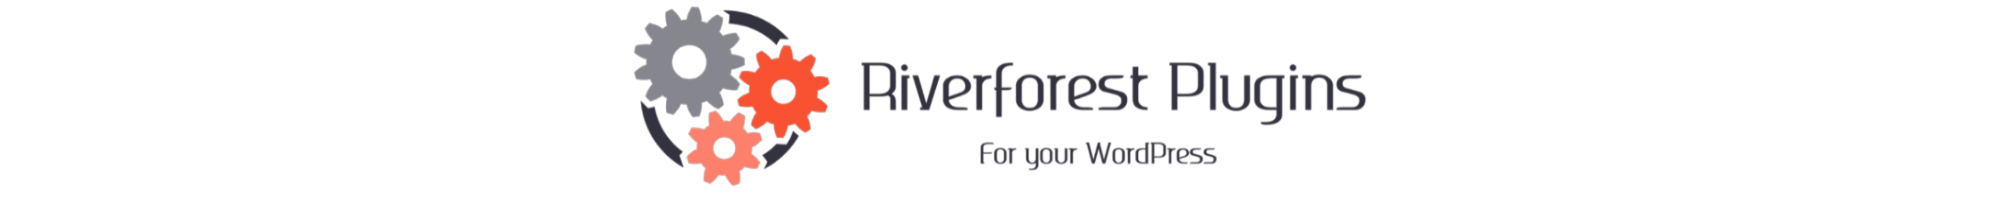 Riverforest Plugins Shop